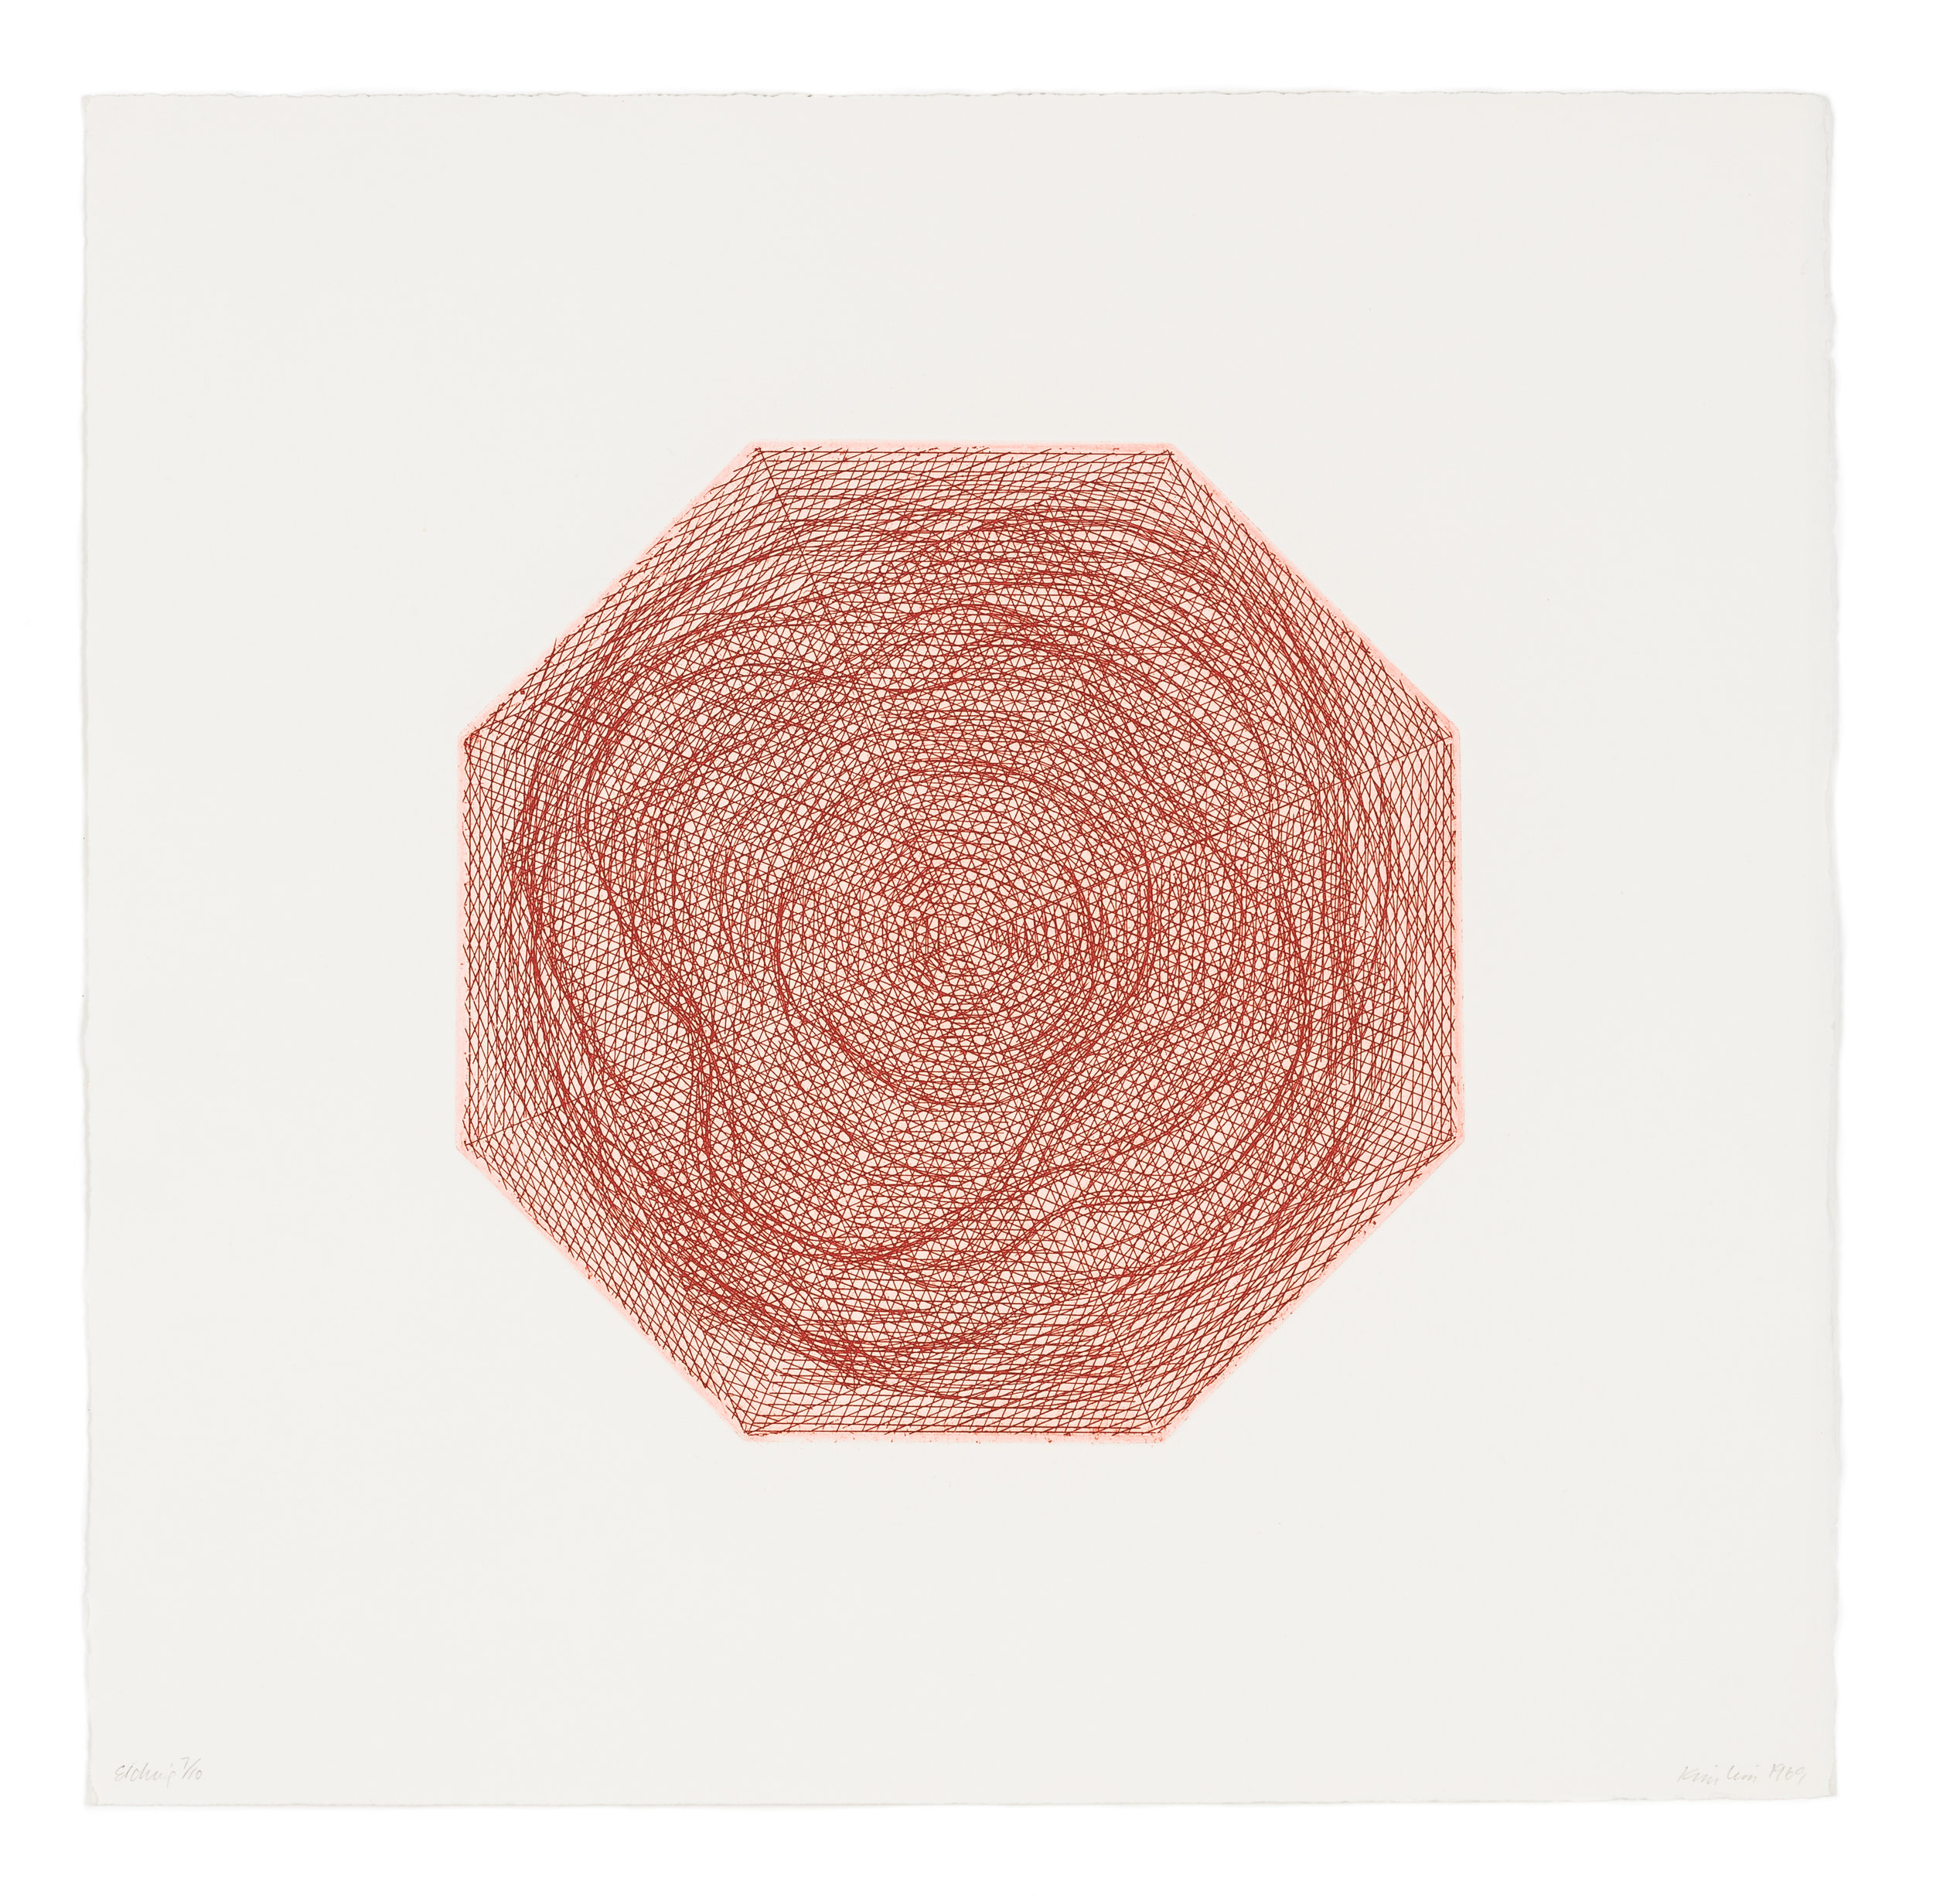 Kim Lim (1936-1997) ,  Red Octagon , etching, 40 x 40 cm, edition of 10